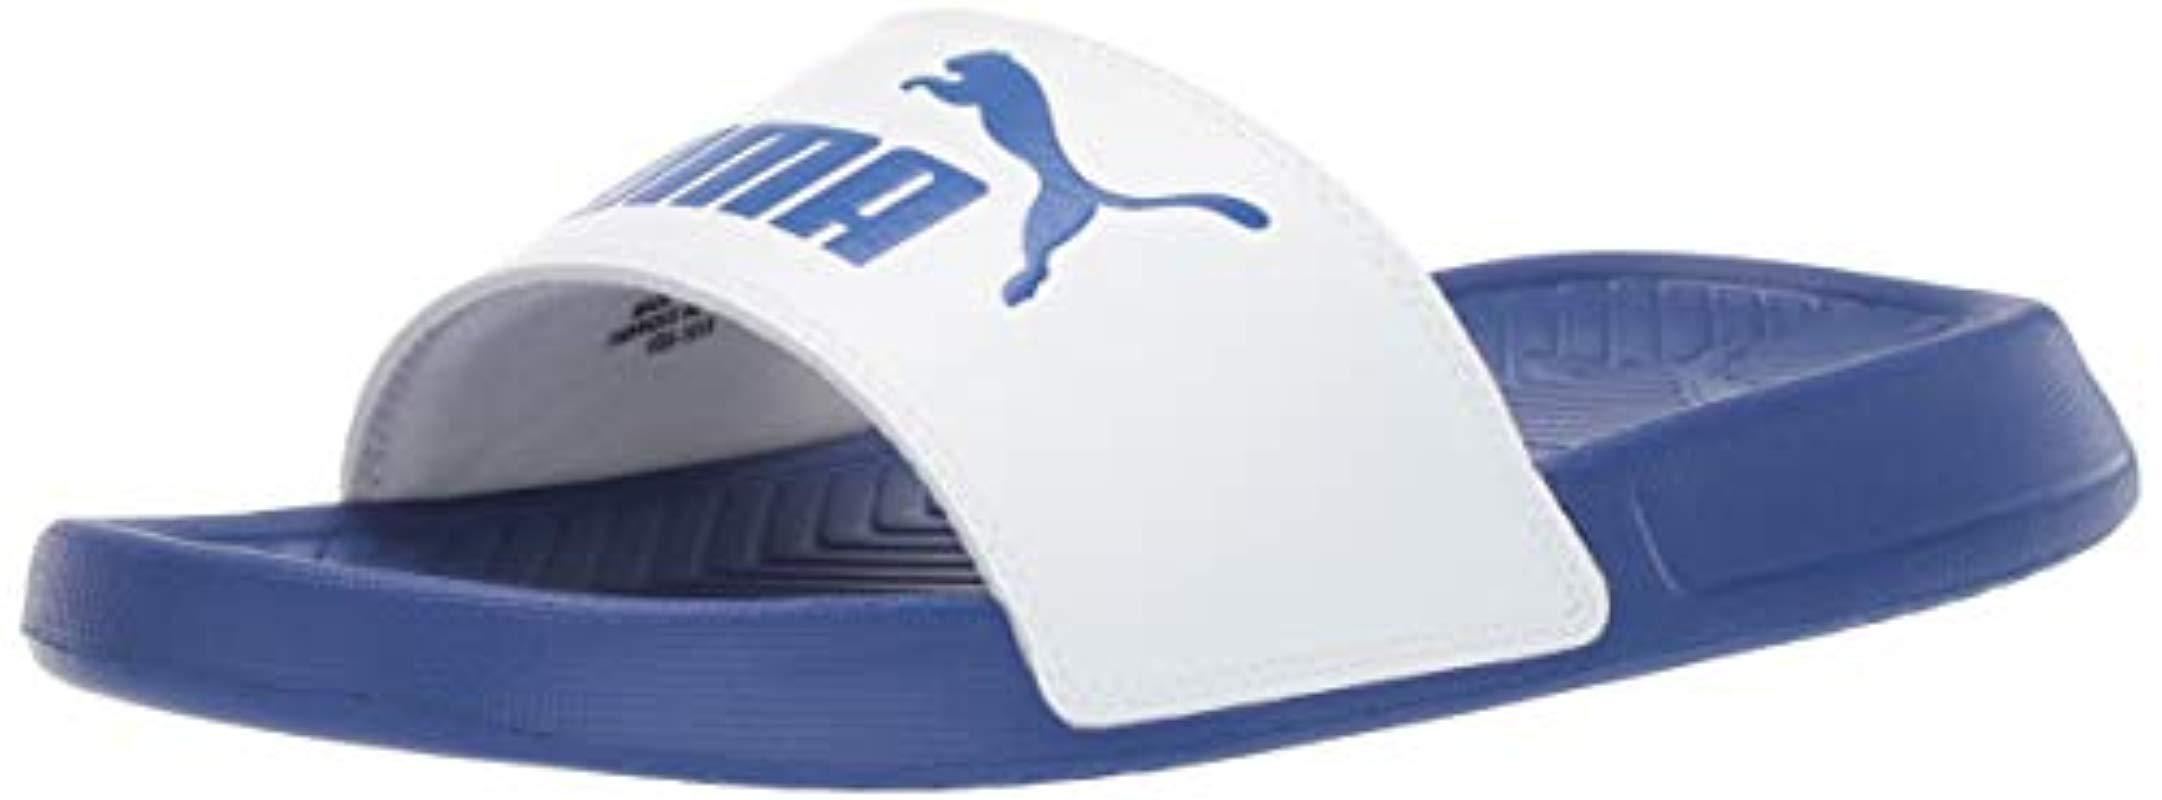 a49879f9df913 Lyst - PUMA Popcat in Blue for Men